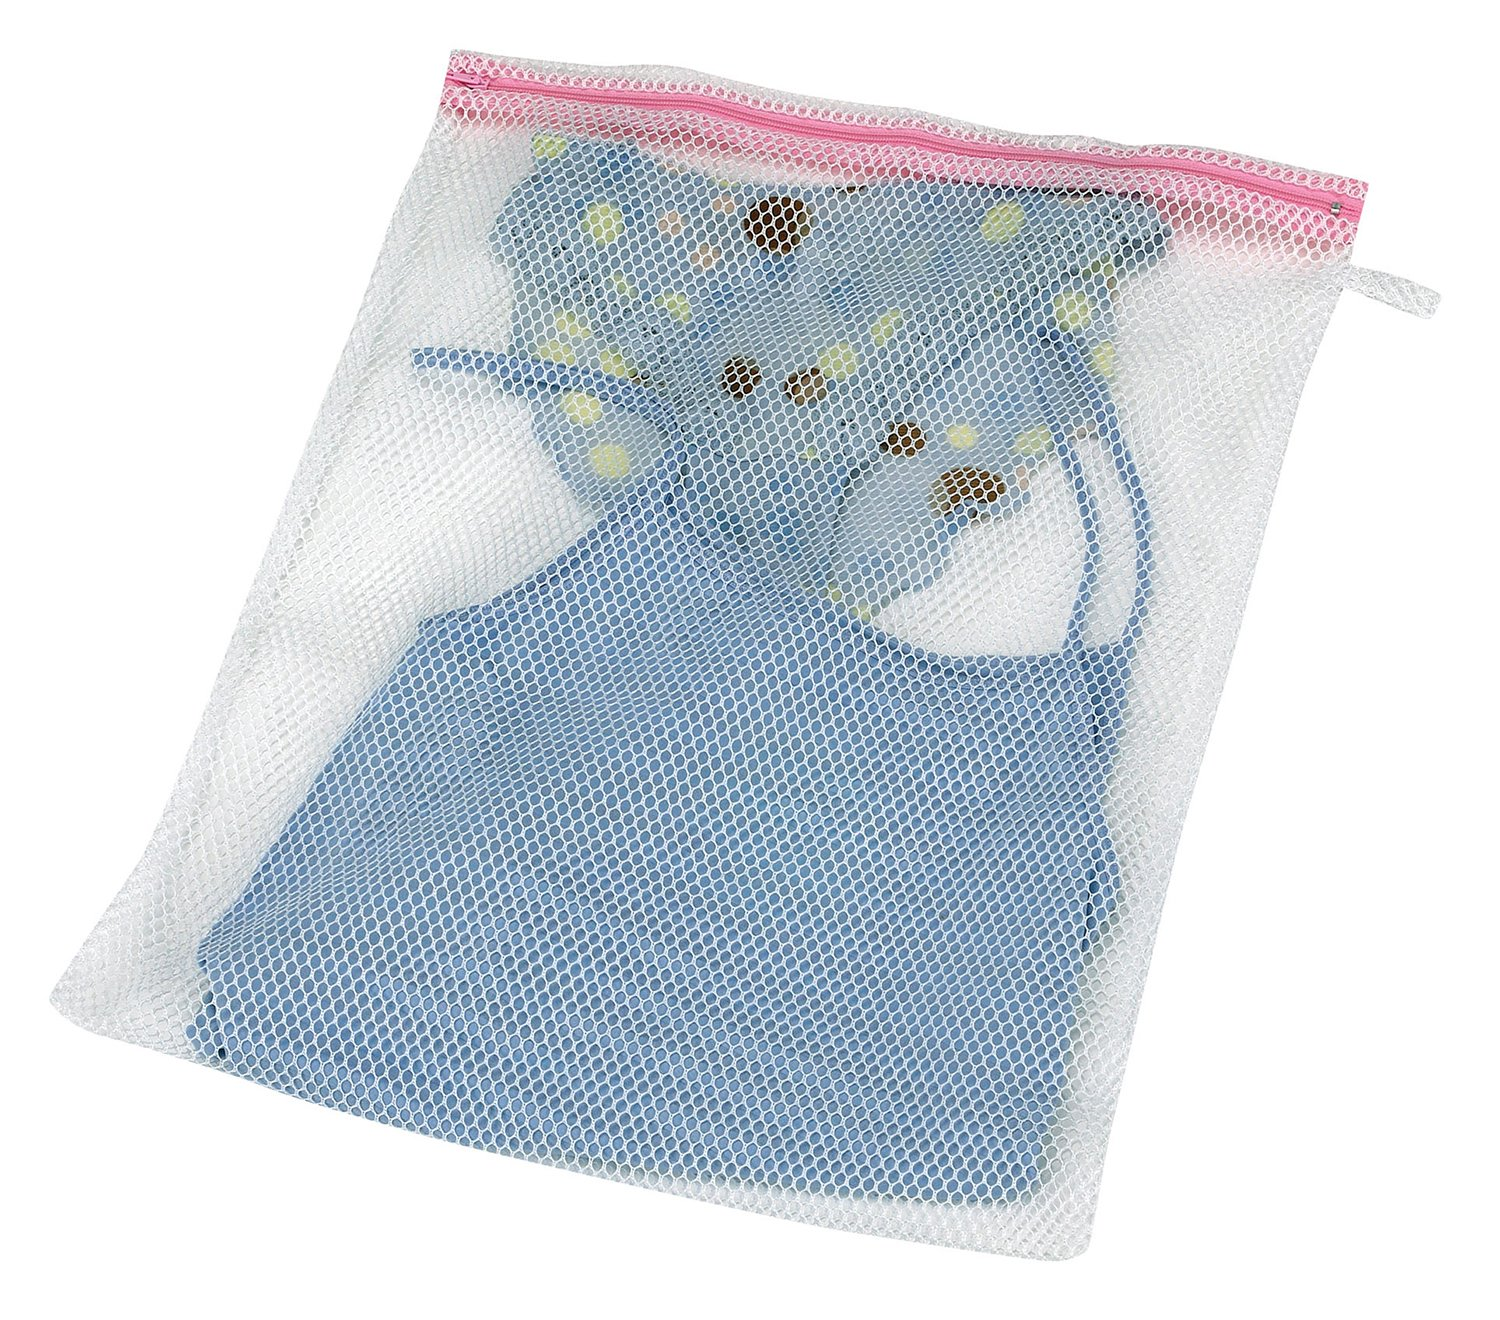 Household Essentials 121 Lingerie Laundry Image 1